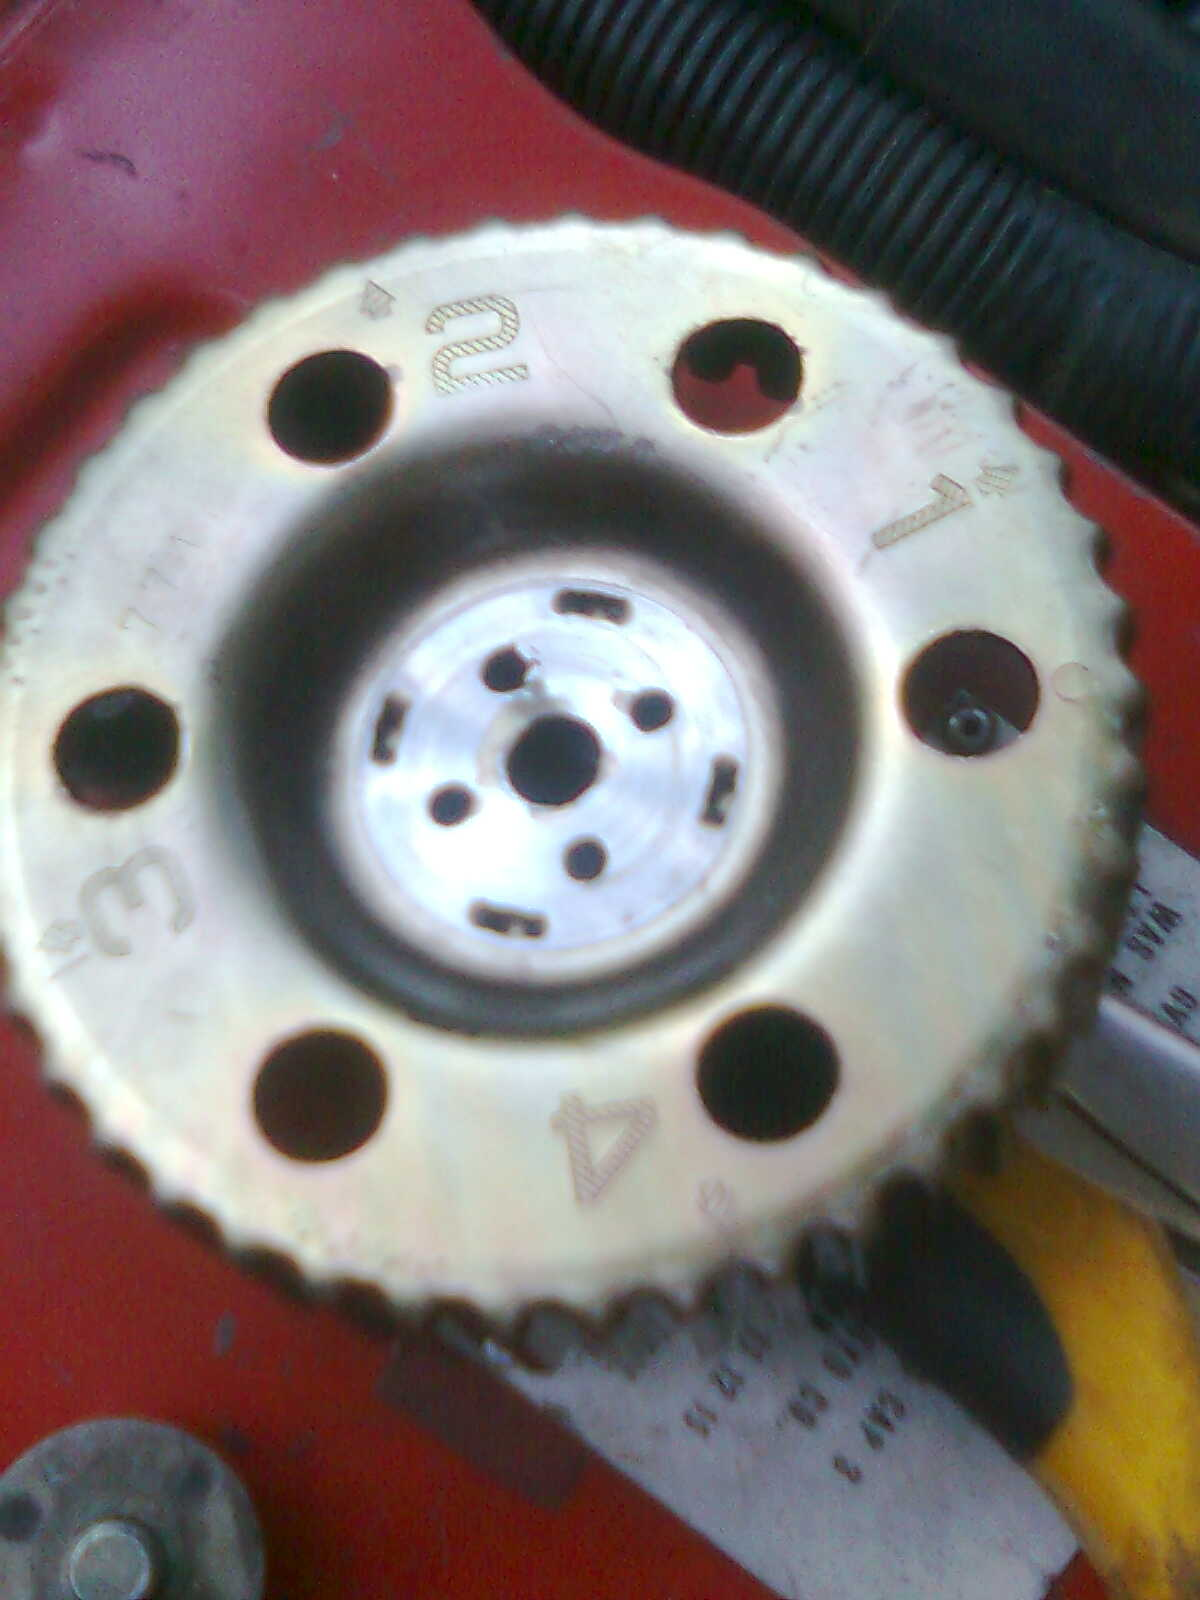 Attached photo of NUMERICAL CAM PULLEY. graphic